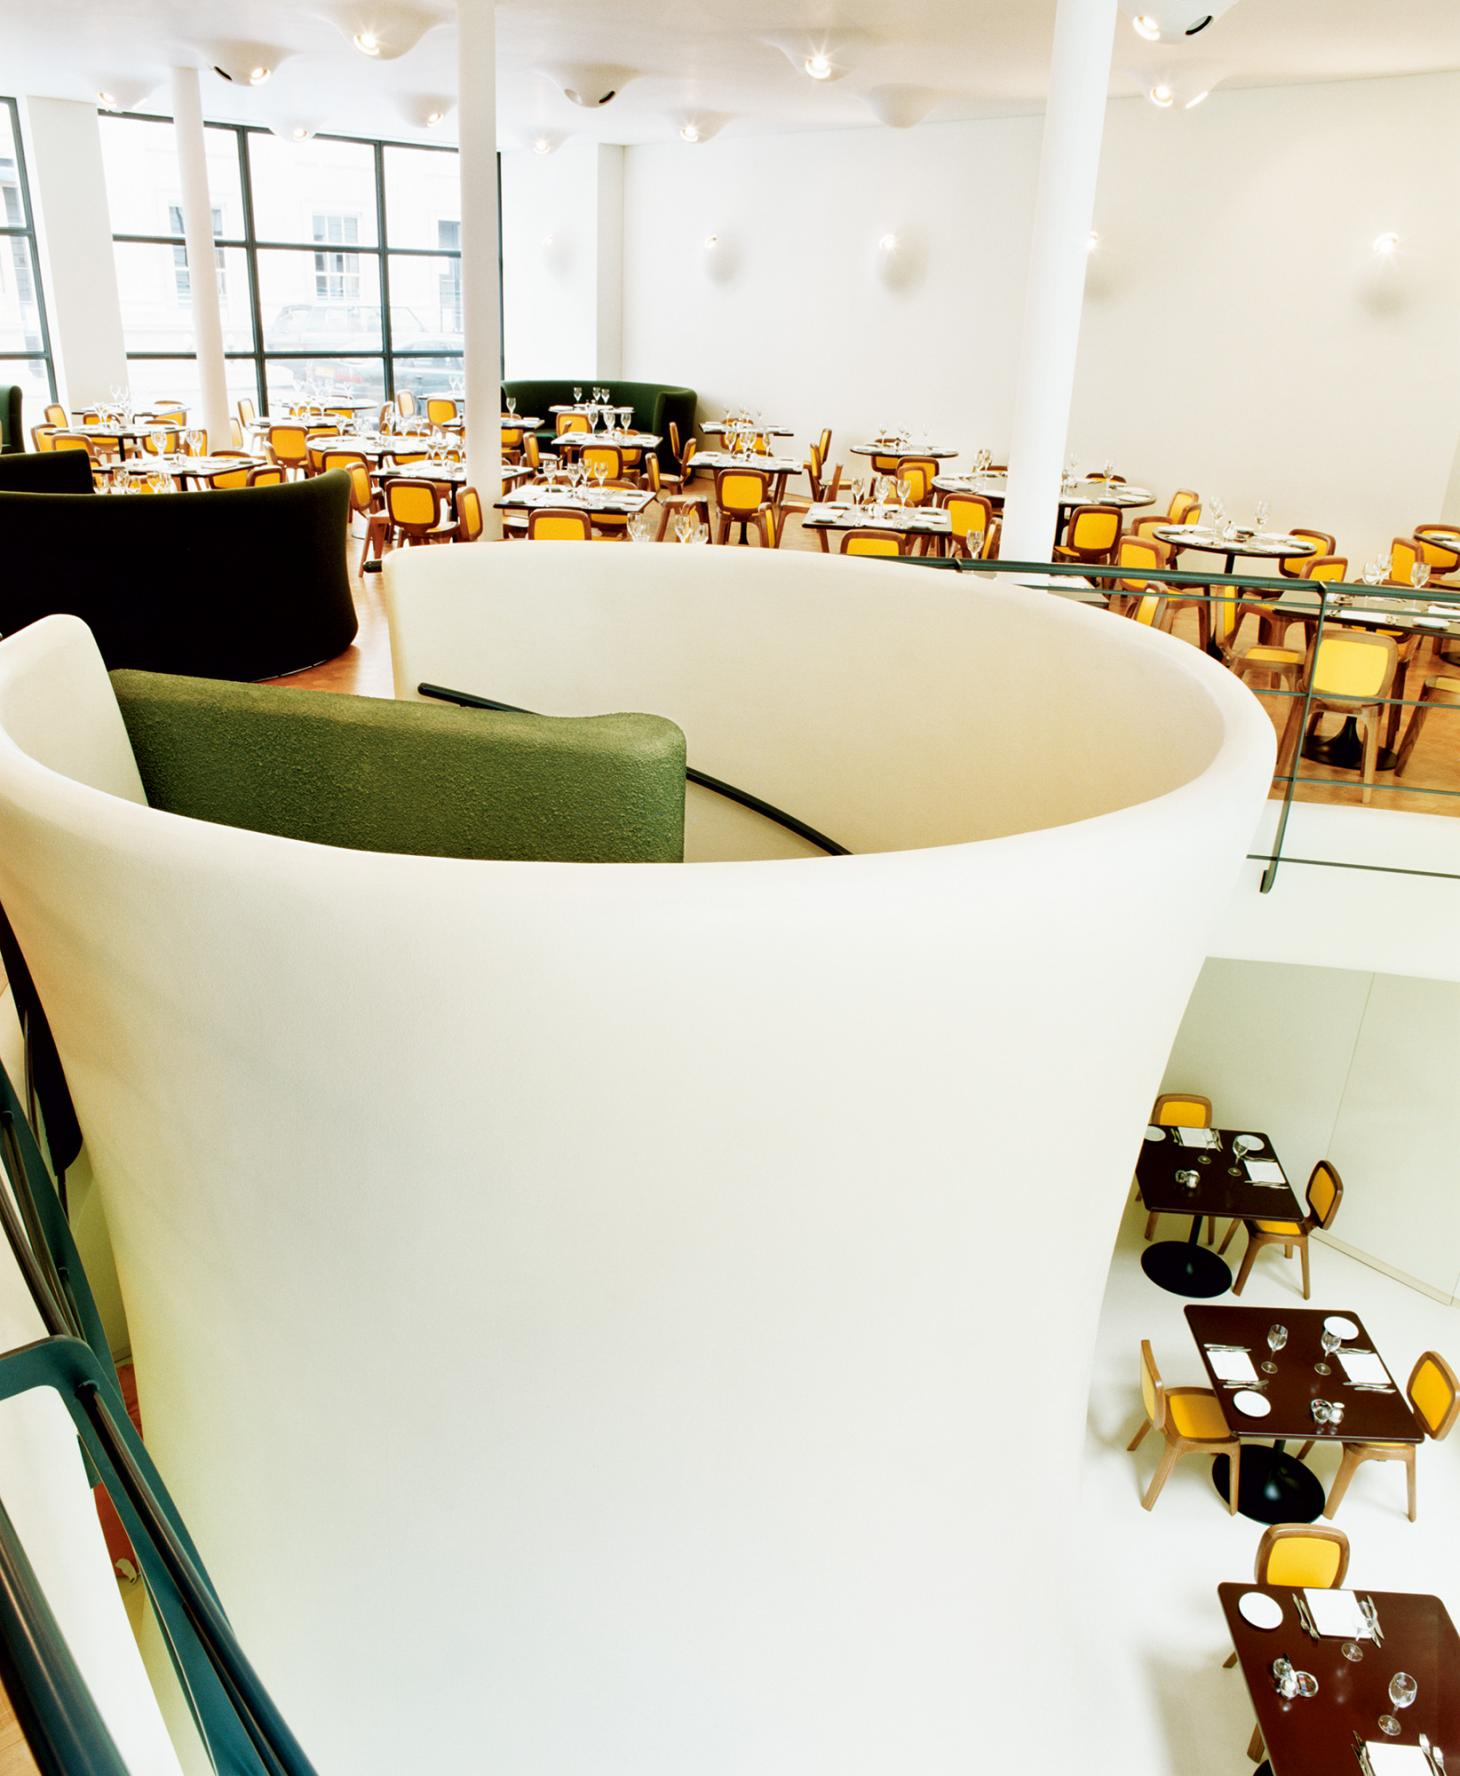 Interior of Coast Restaurant by Marc Newson with green banquets and yellow chairs